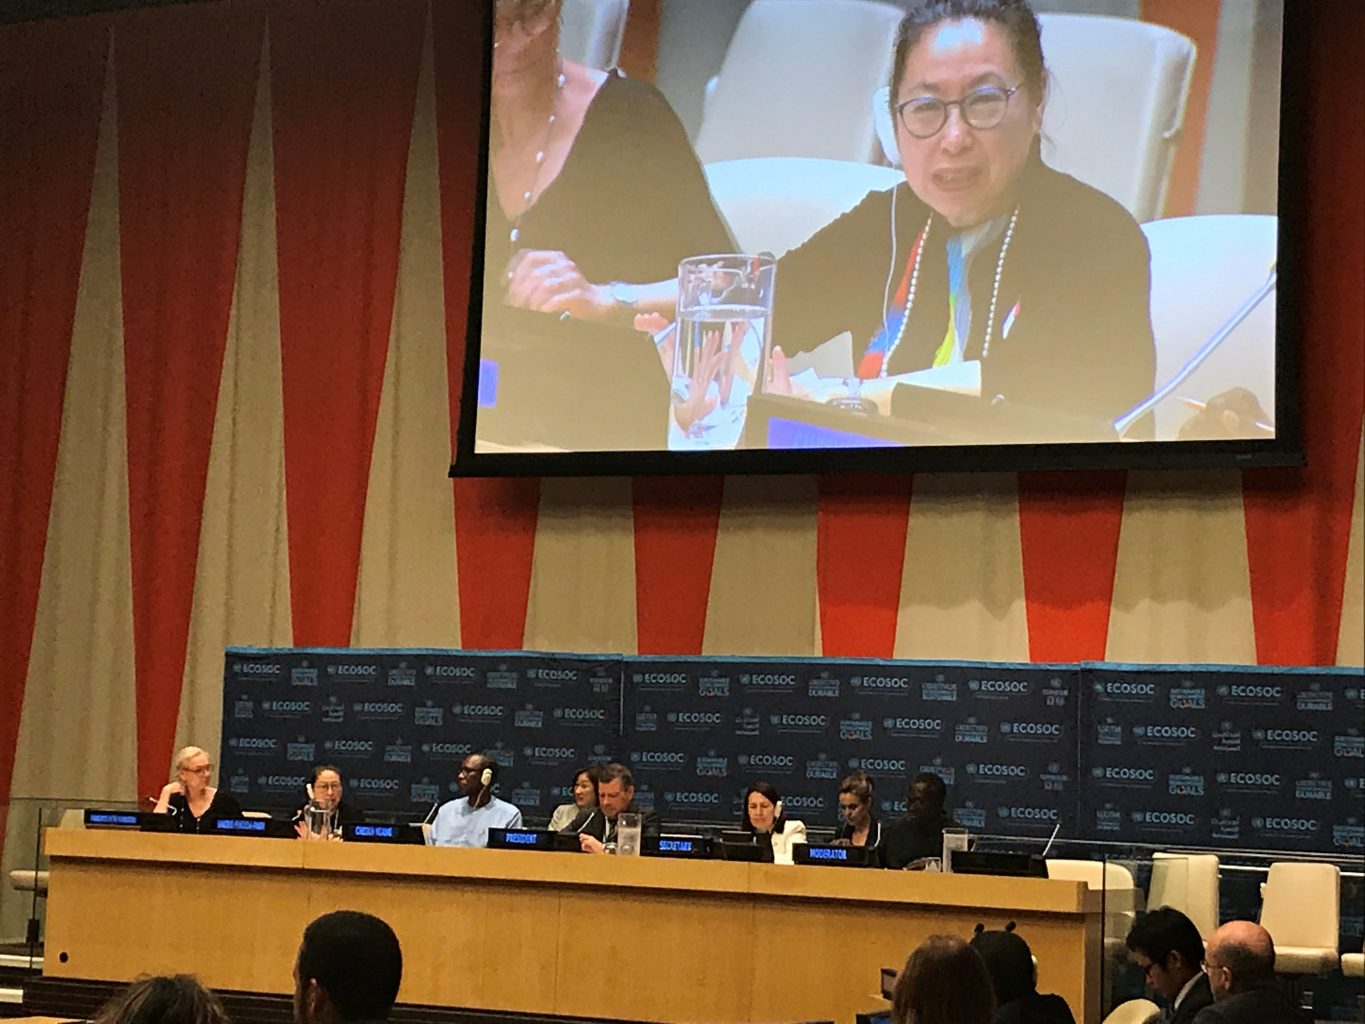 Professor Sakiko Fukuda-Parr, Vice-President of the Committee for Development Policy (CDP), participating as a panelist in the ECOSOC Integration Segment on July 8